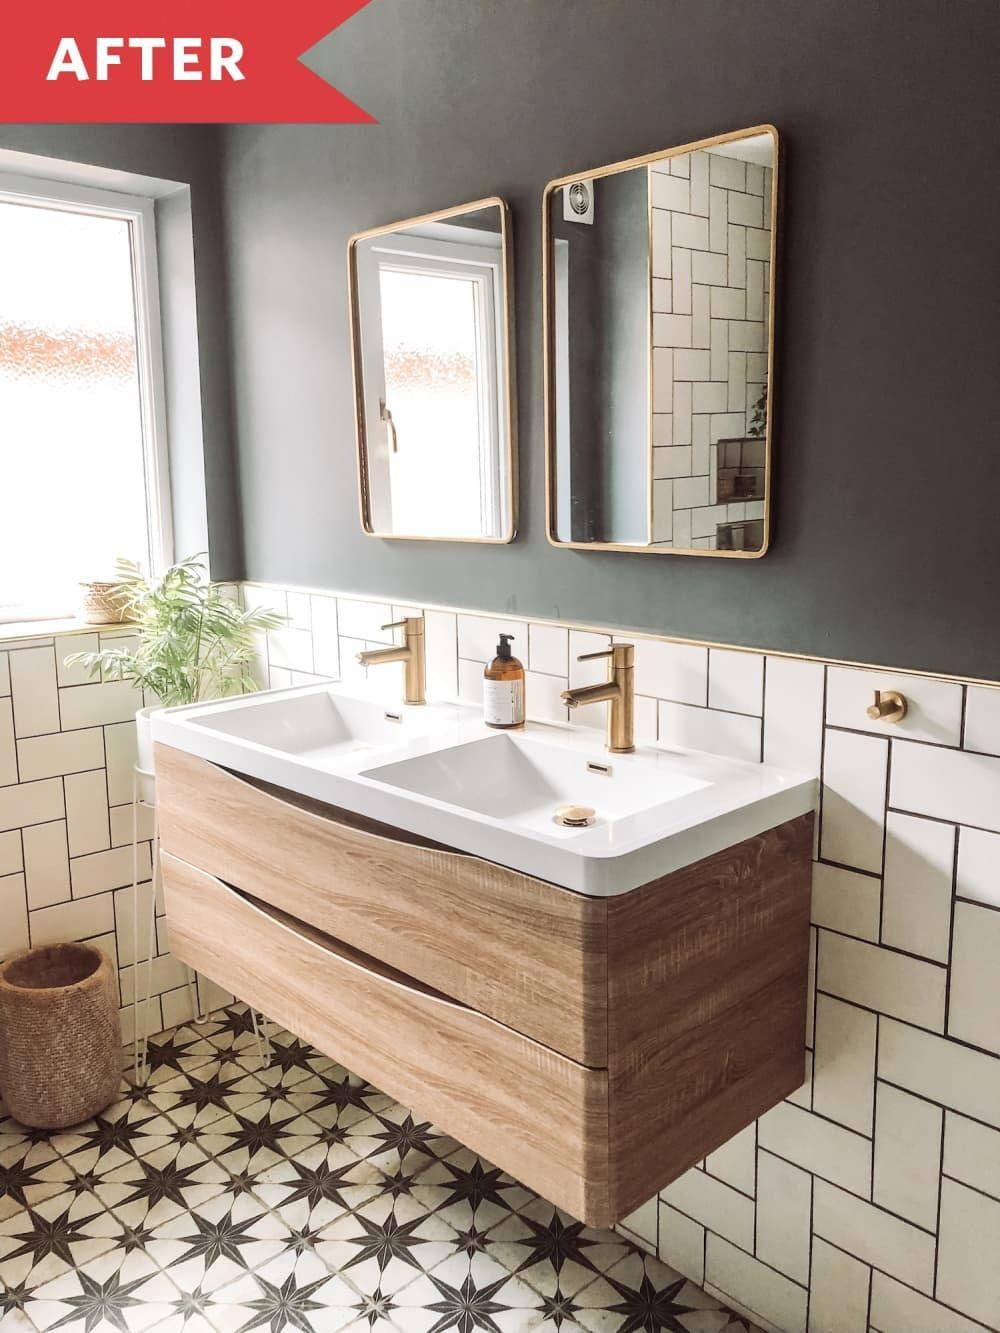 This Could Certainly Get Your Interest Bathroom Makeover Diy In 2020 Bathrooms Remodel Bathroom Renovation Cost Diy Bathroom Makeover